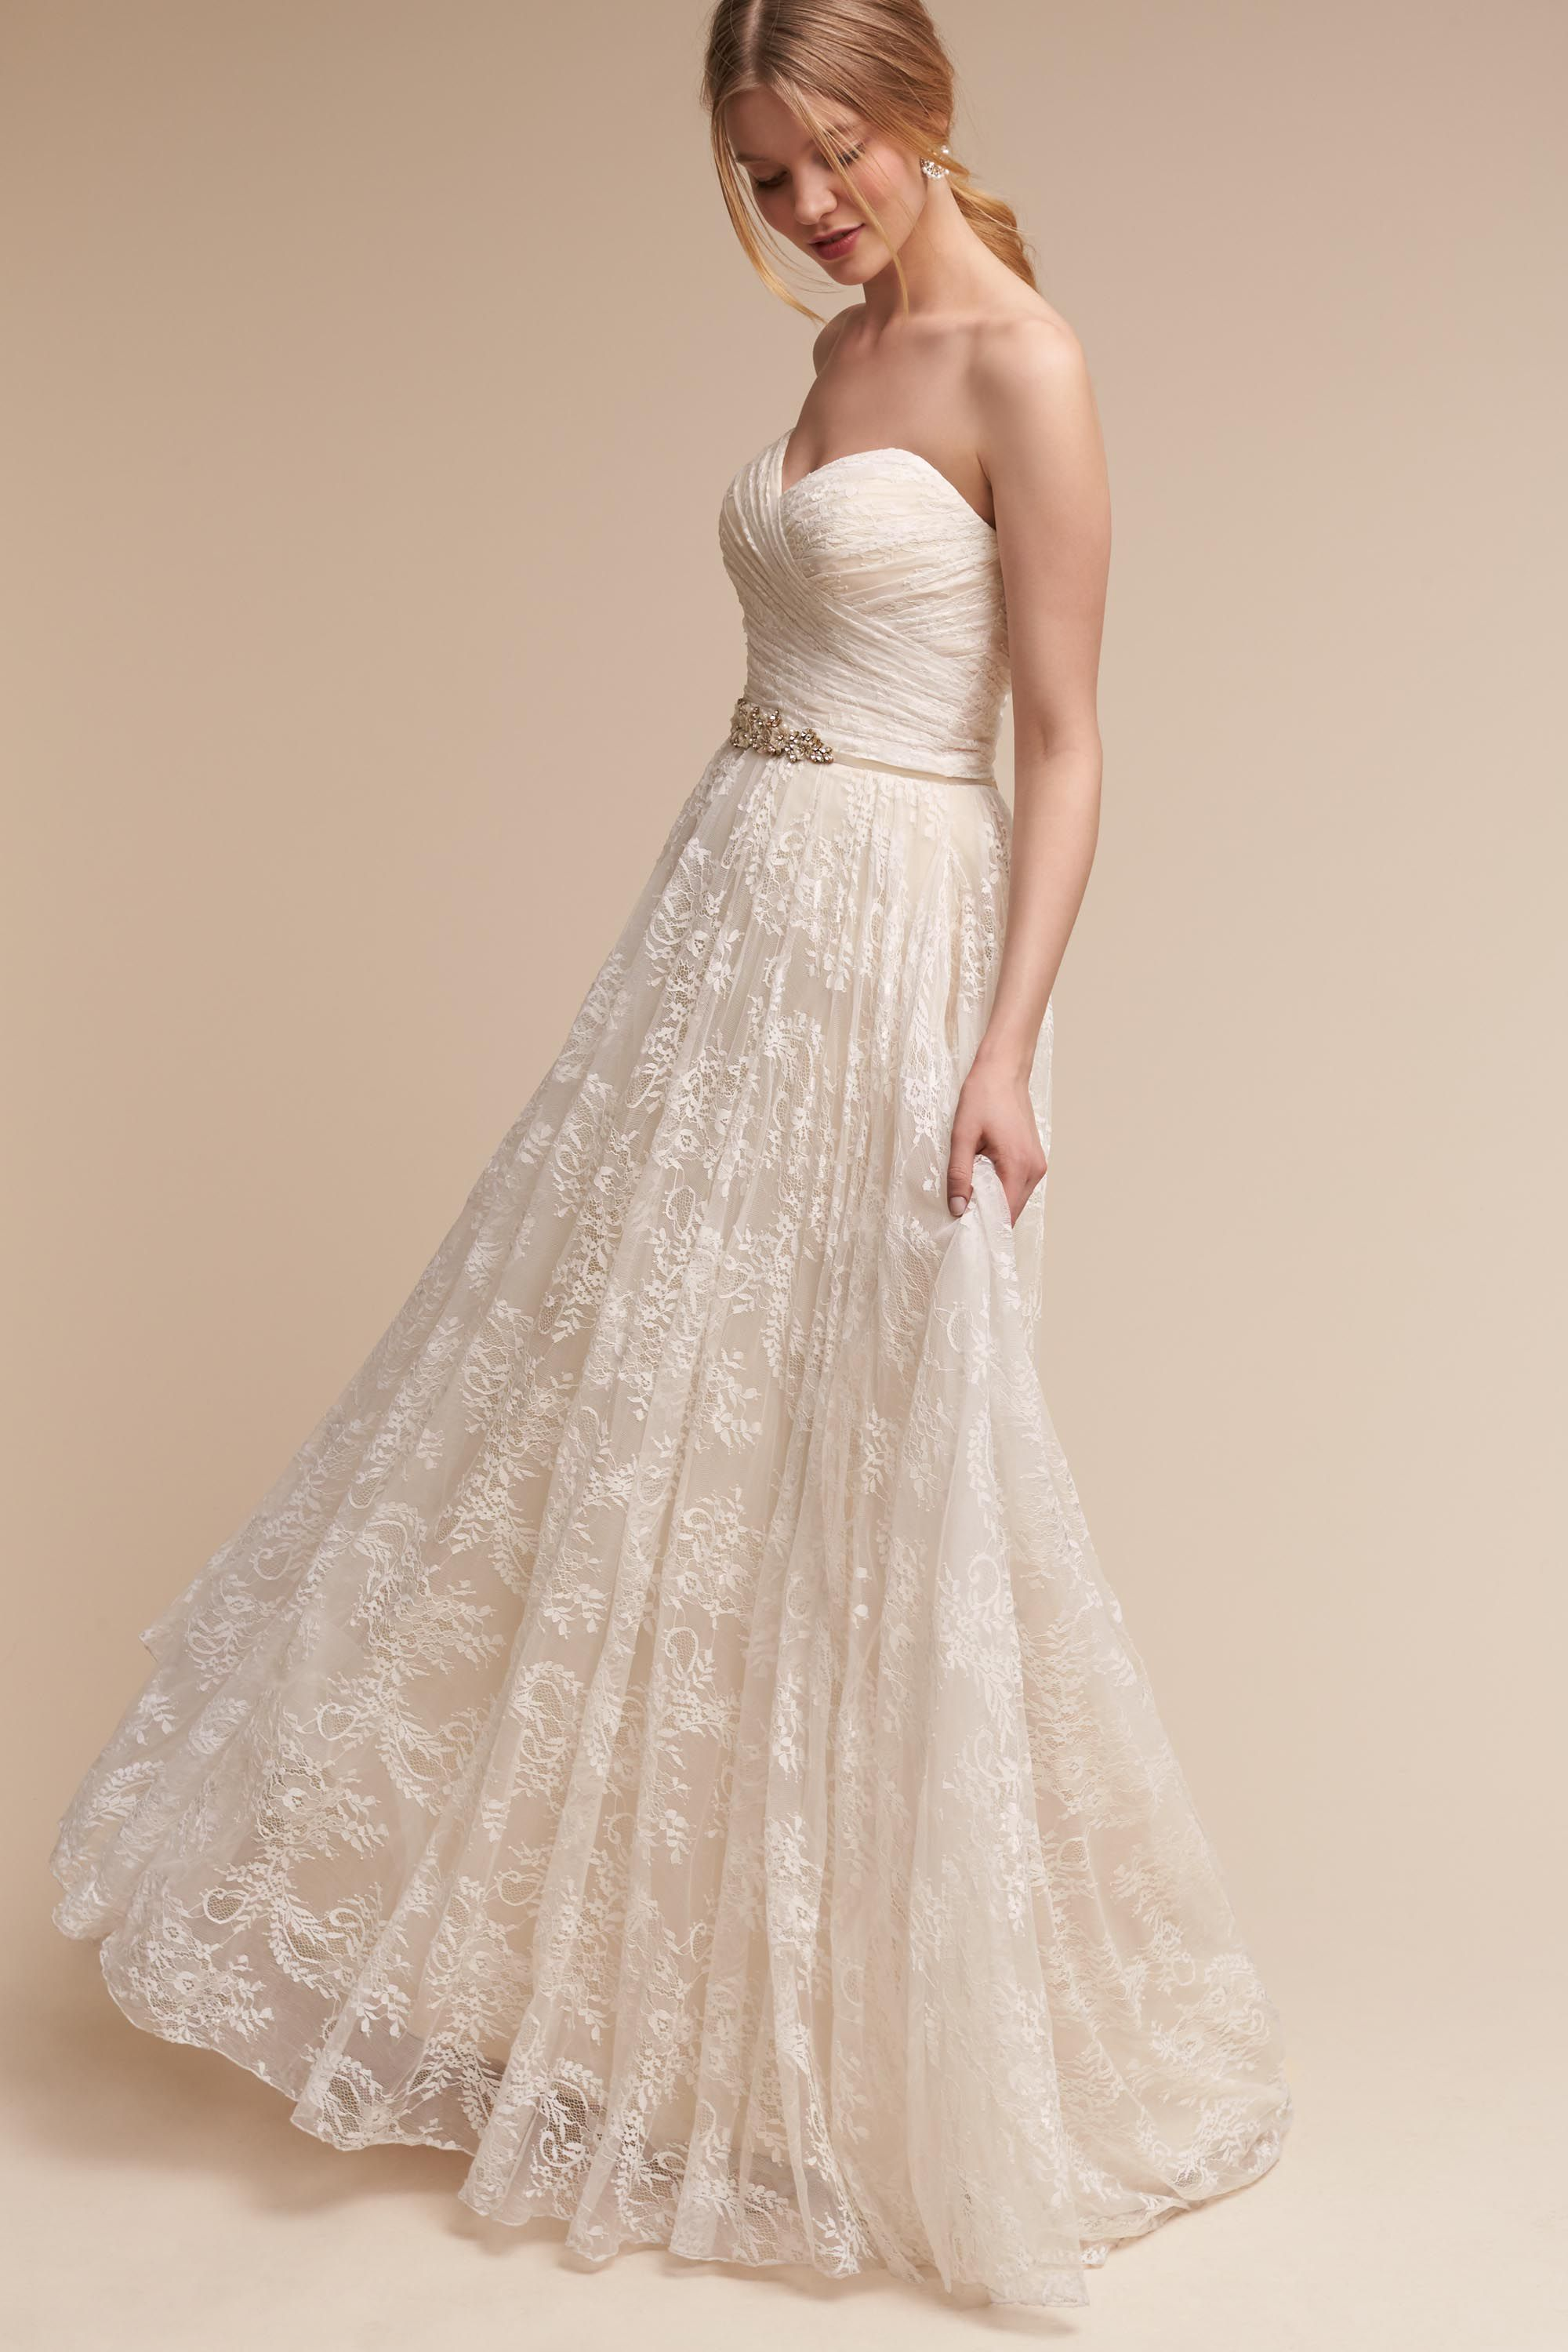 How To Buy A Wedding Dress